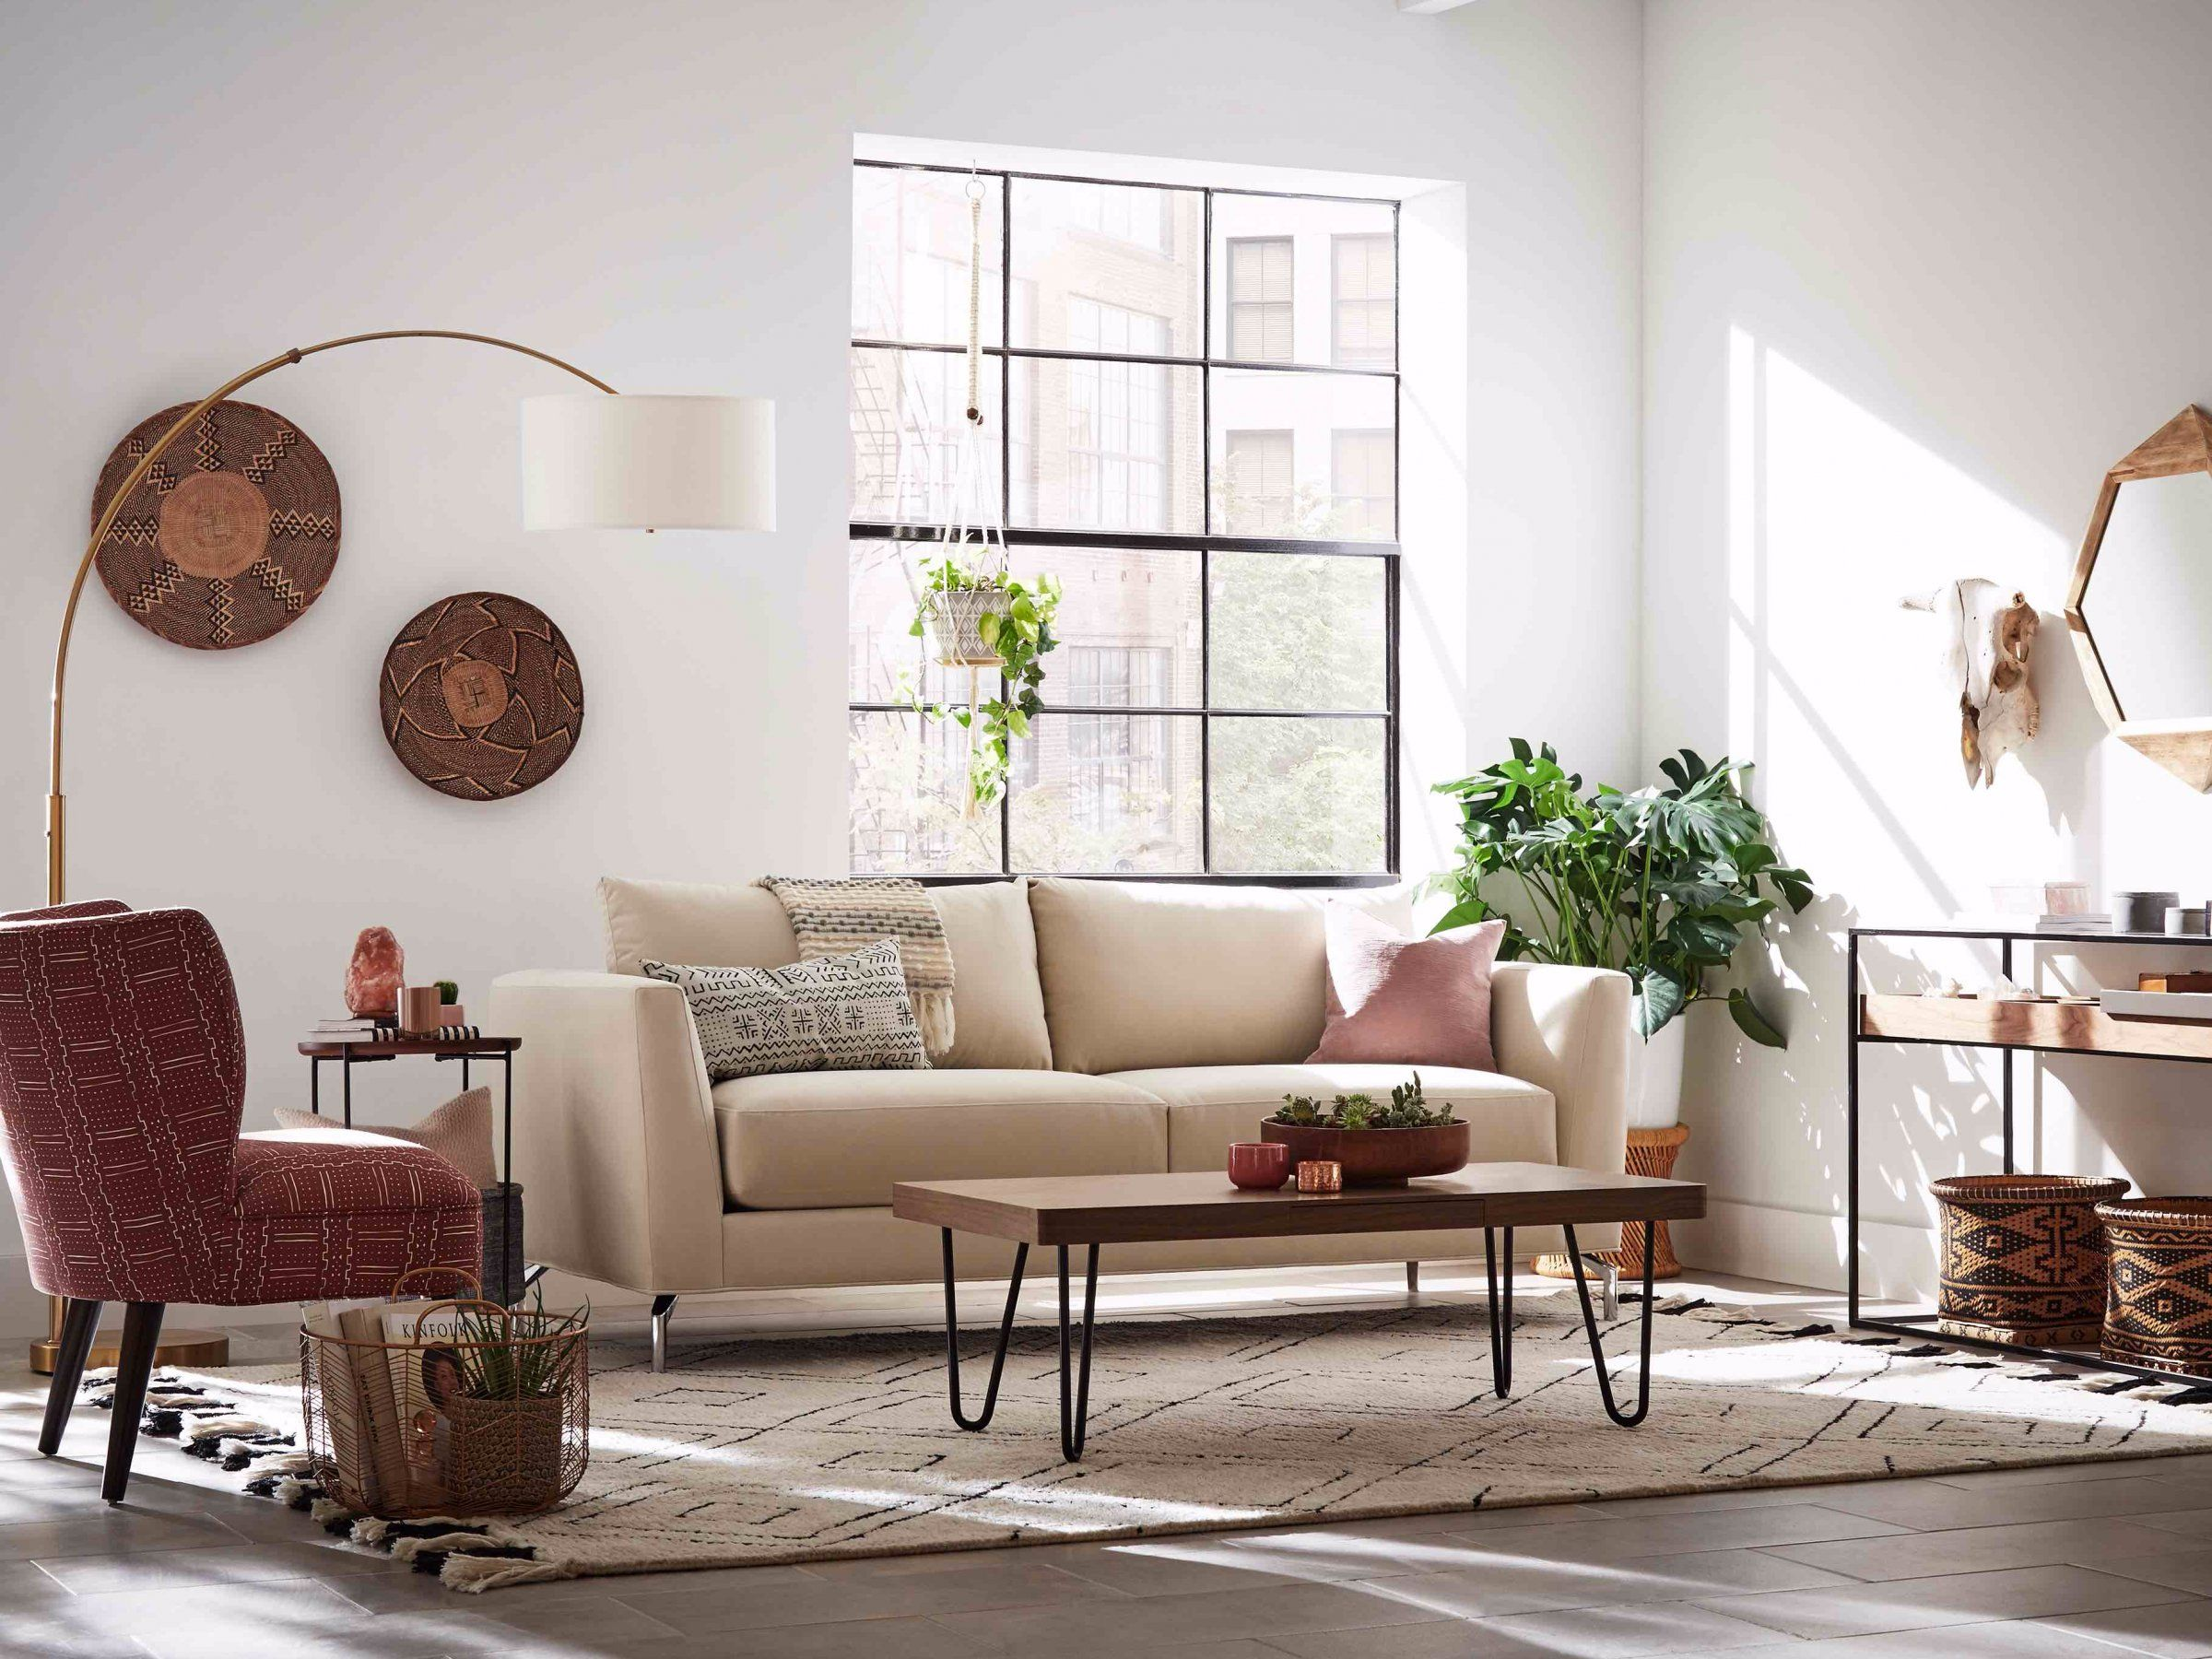 Amazon Launches New Furniture Brands Furniture Living Room Furniture Riveted Furniture